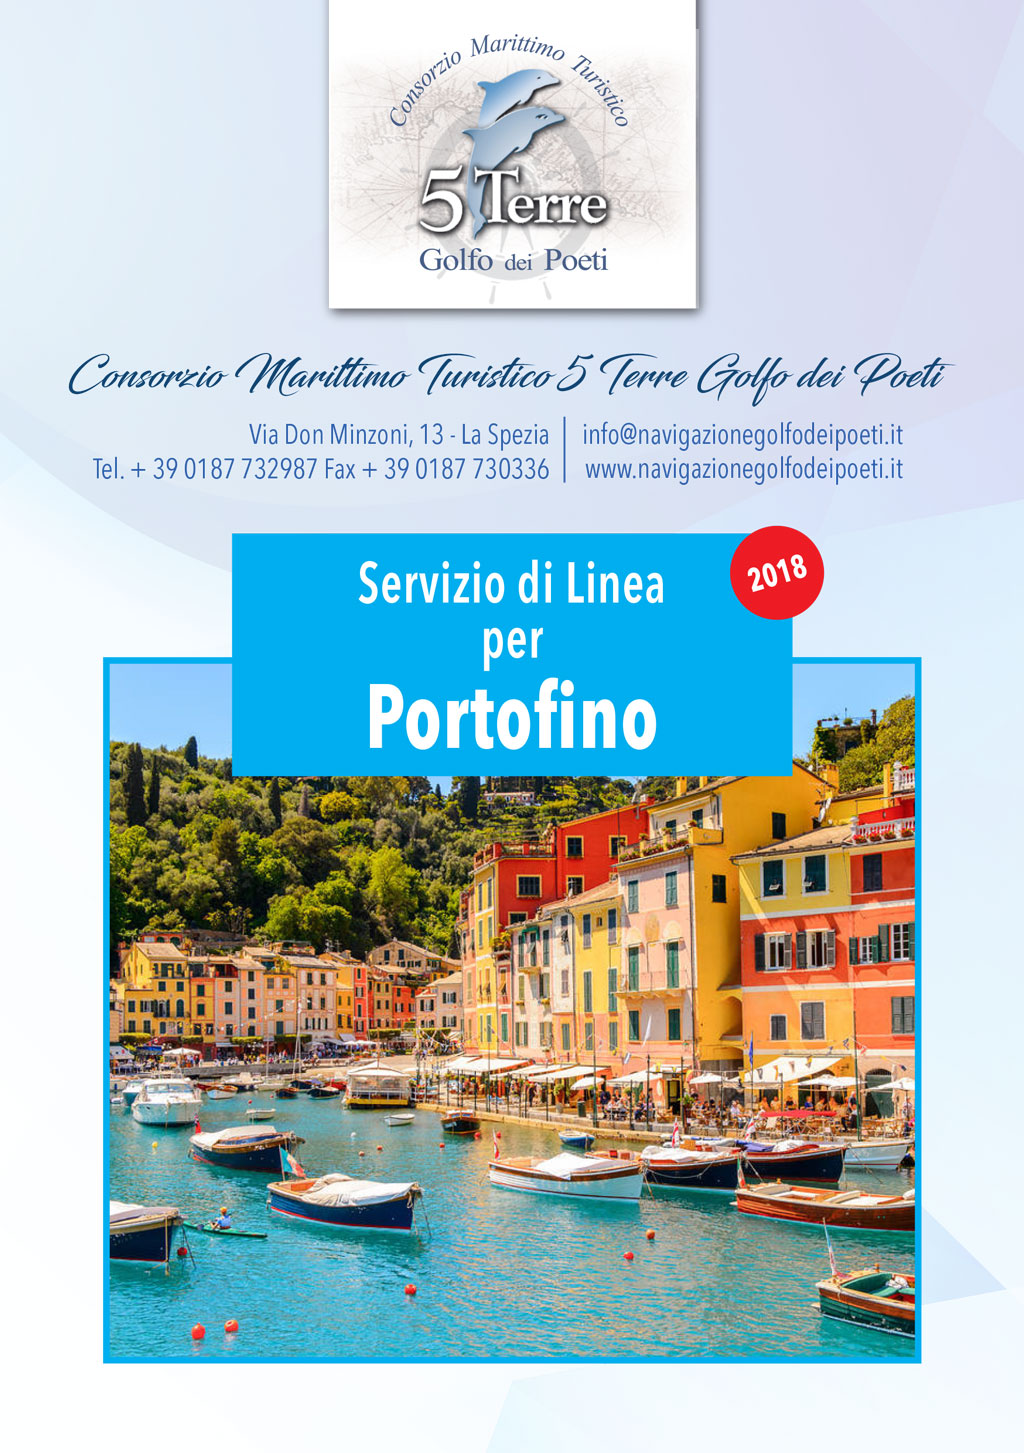 Portofino battello 2018